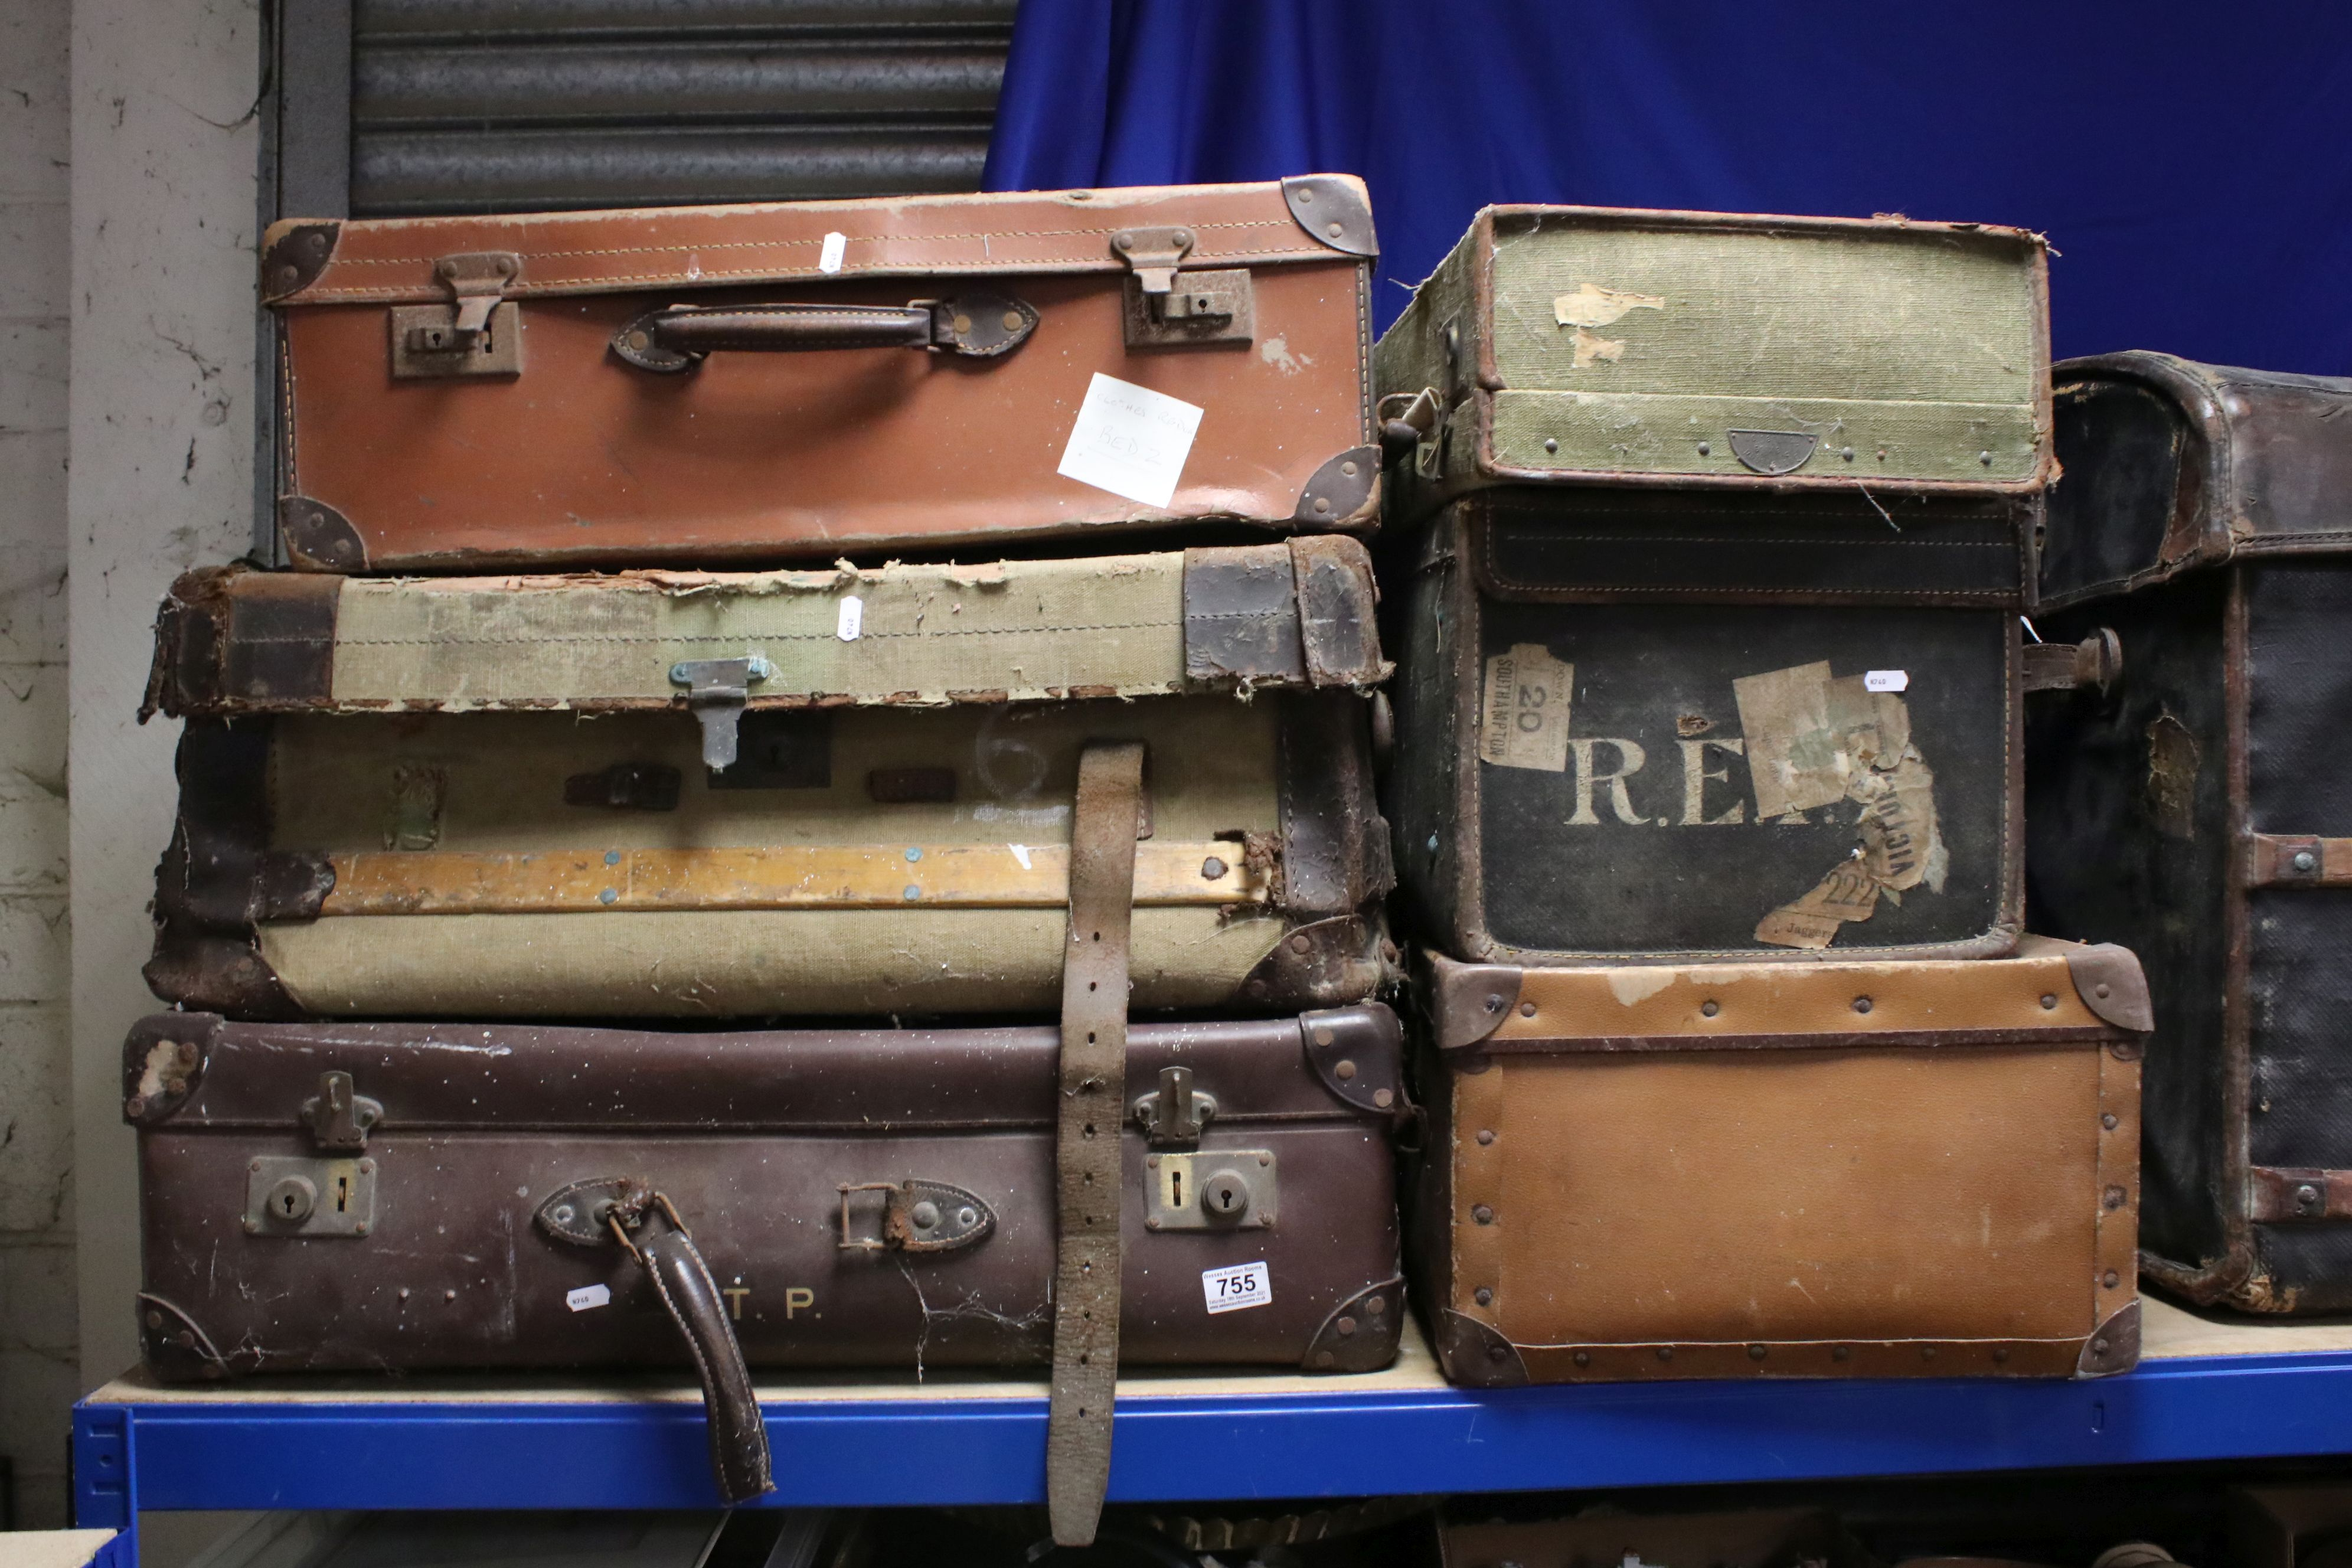 Six Early 20th century Suitcases / Travelling Trunks